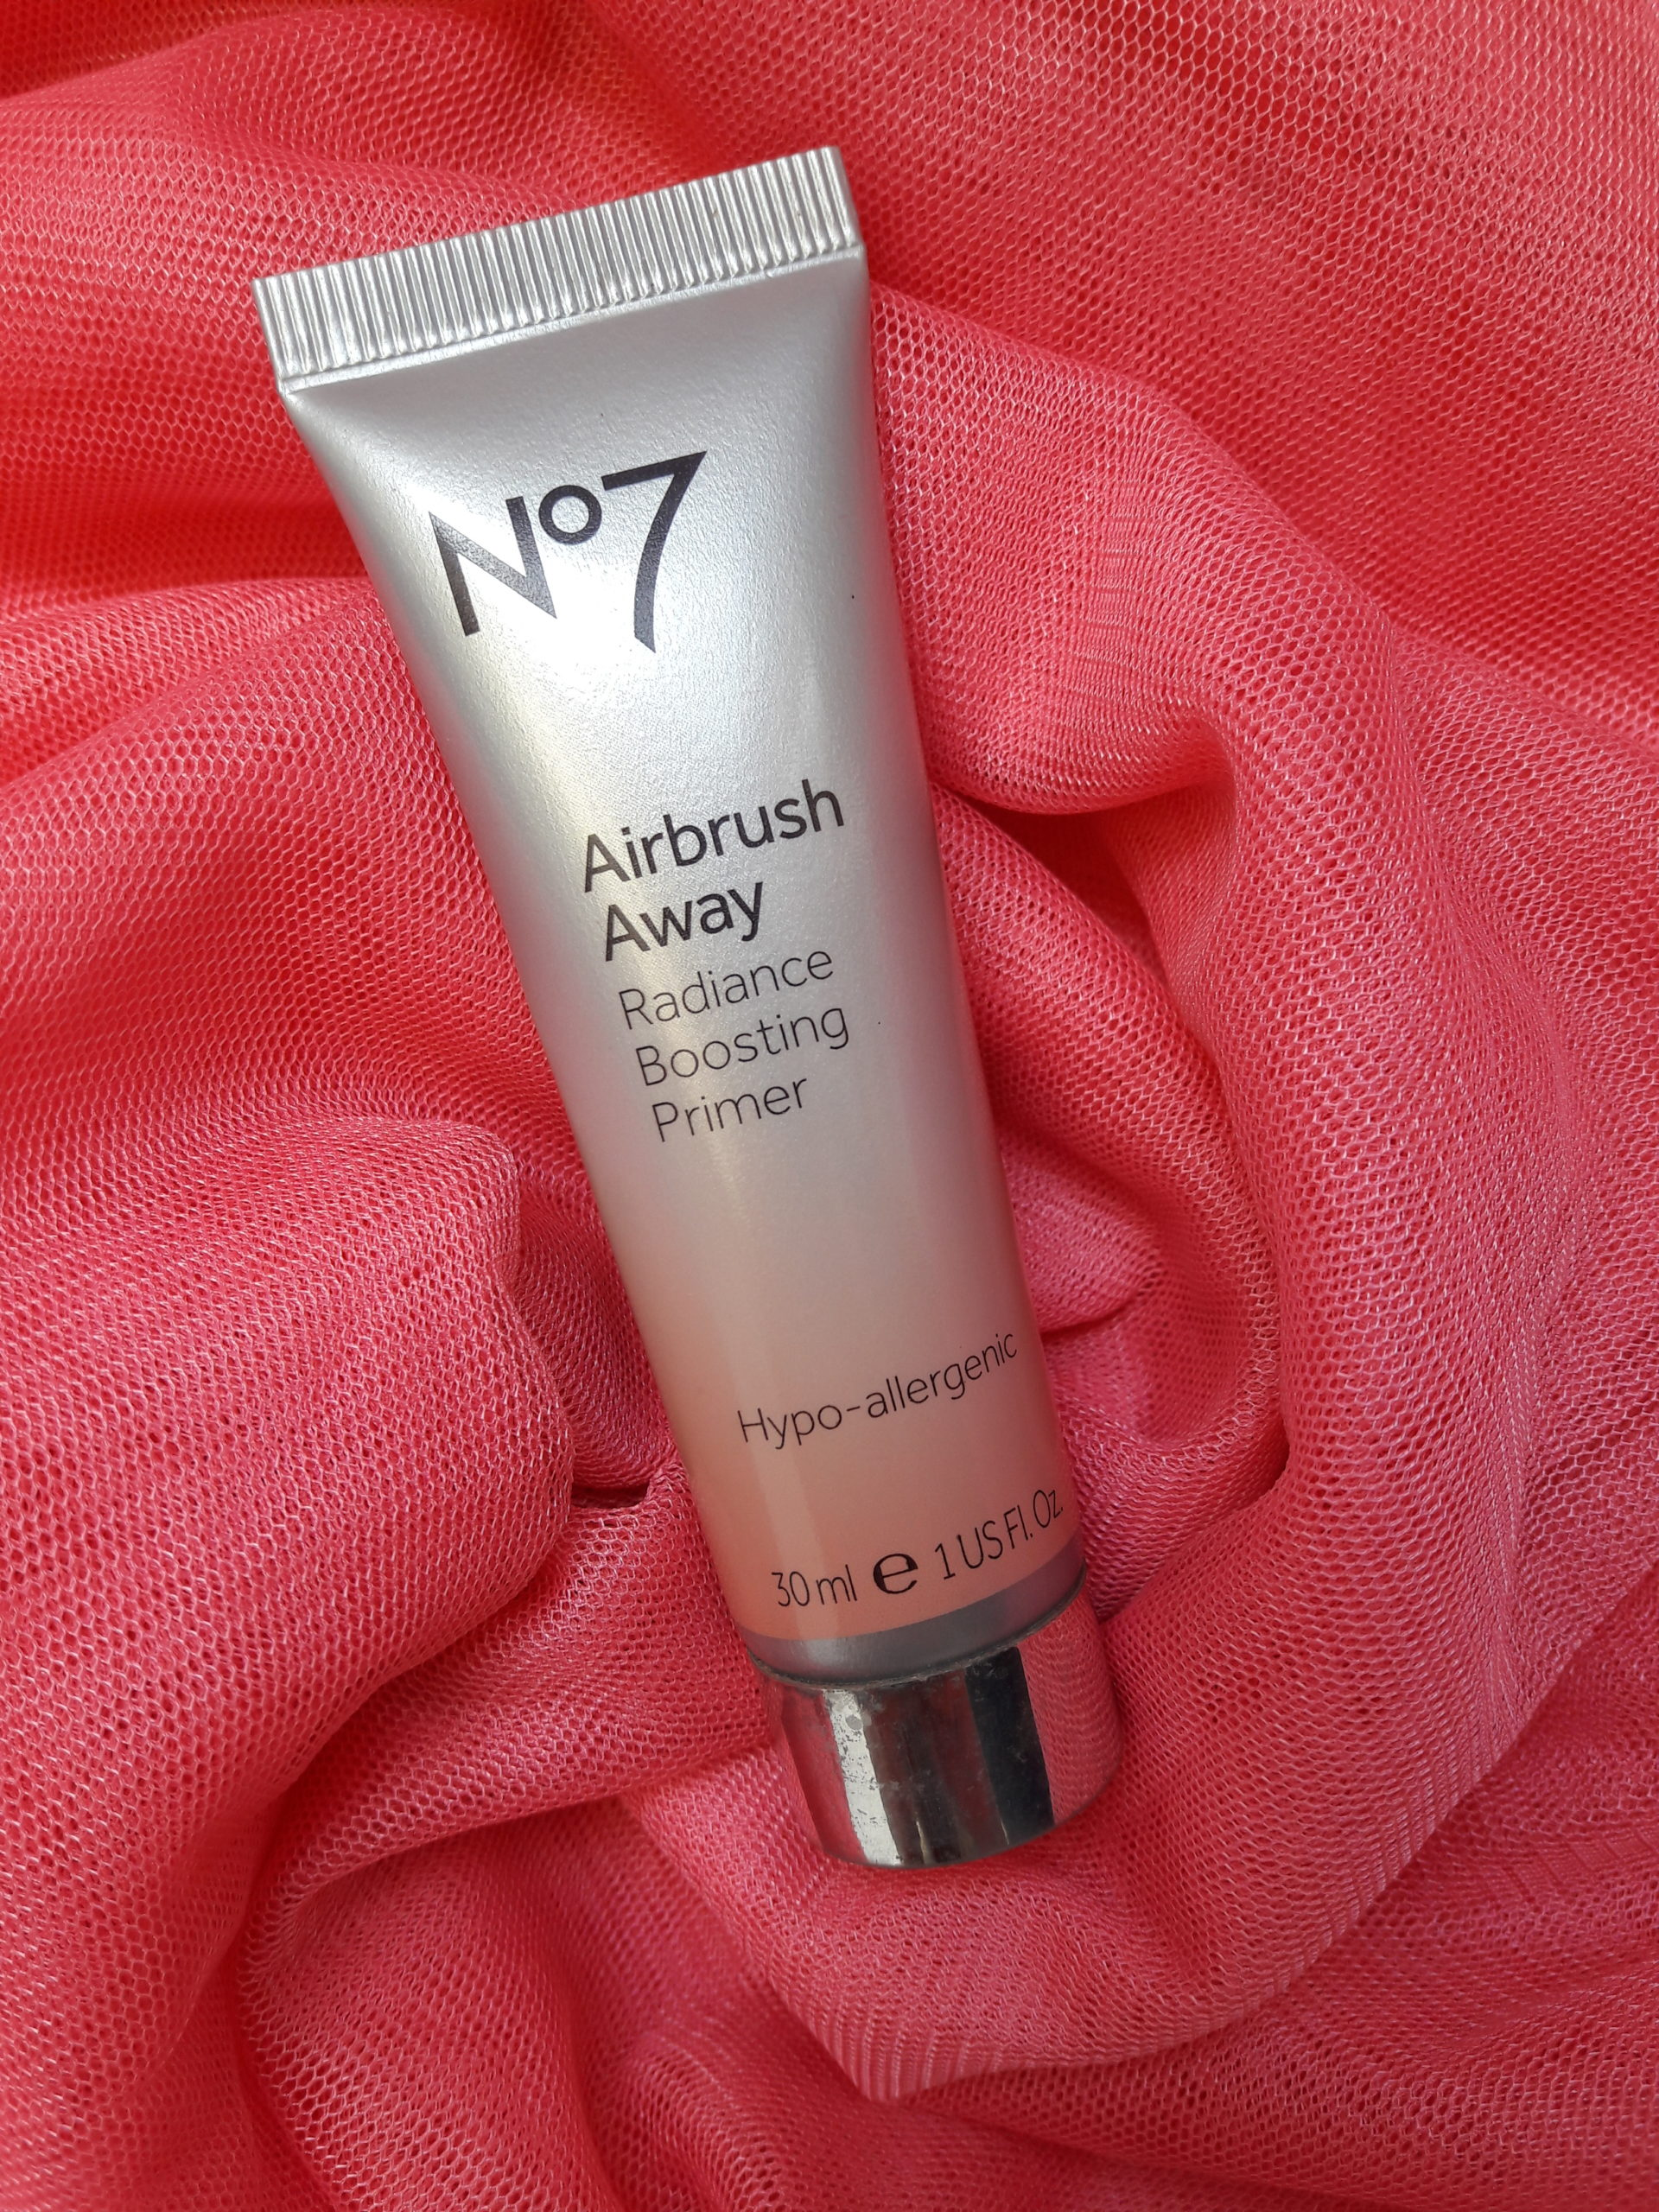 No7 Airbrush Radiance Boosting Primer Review